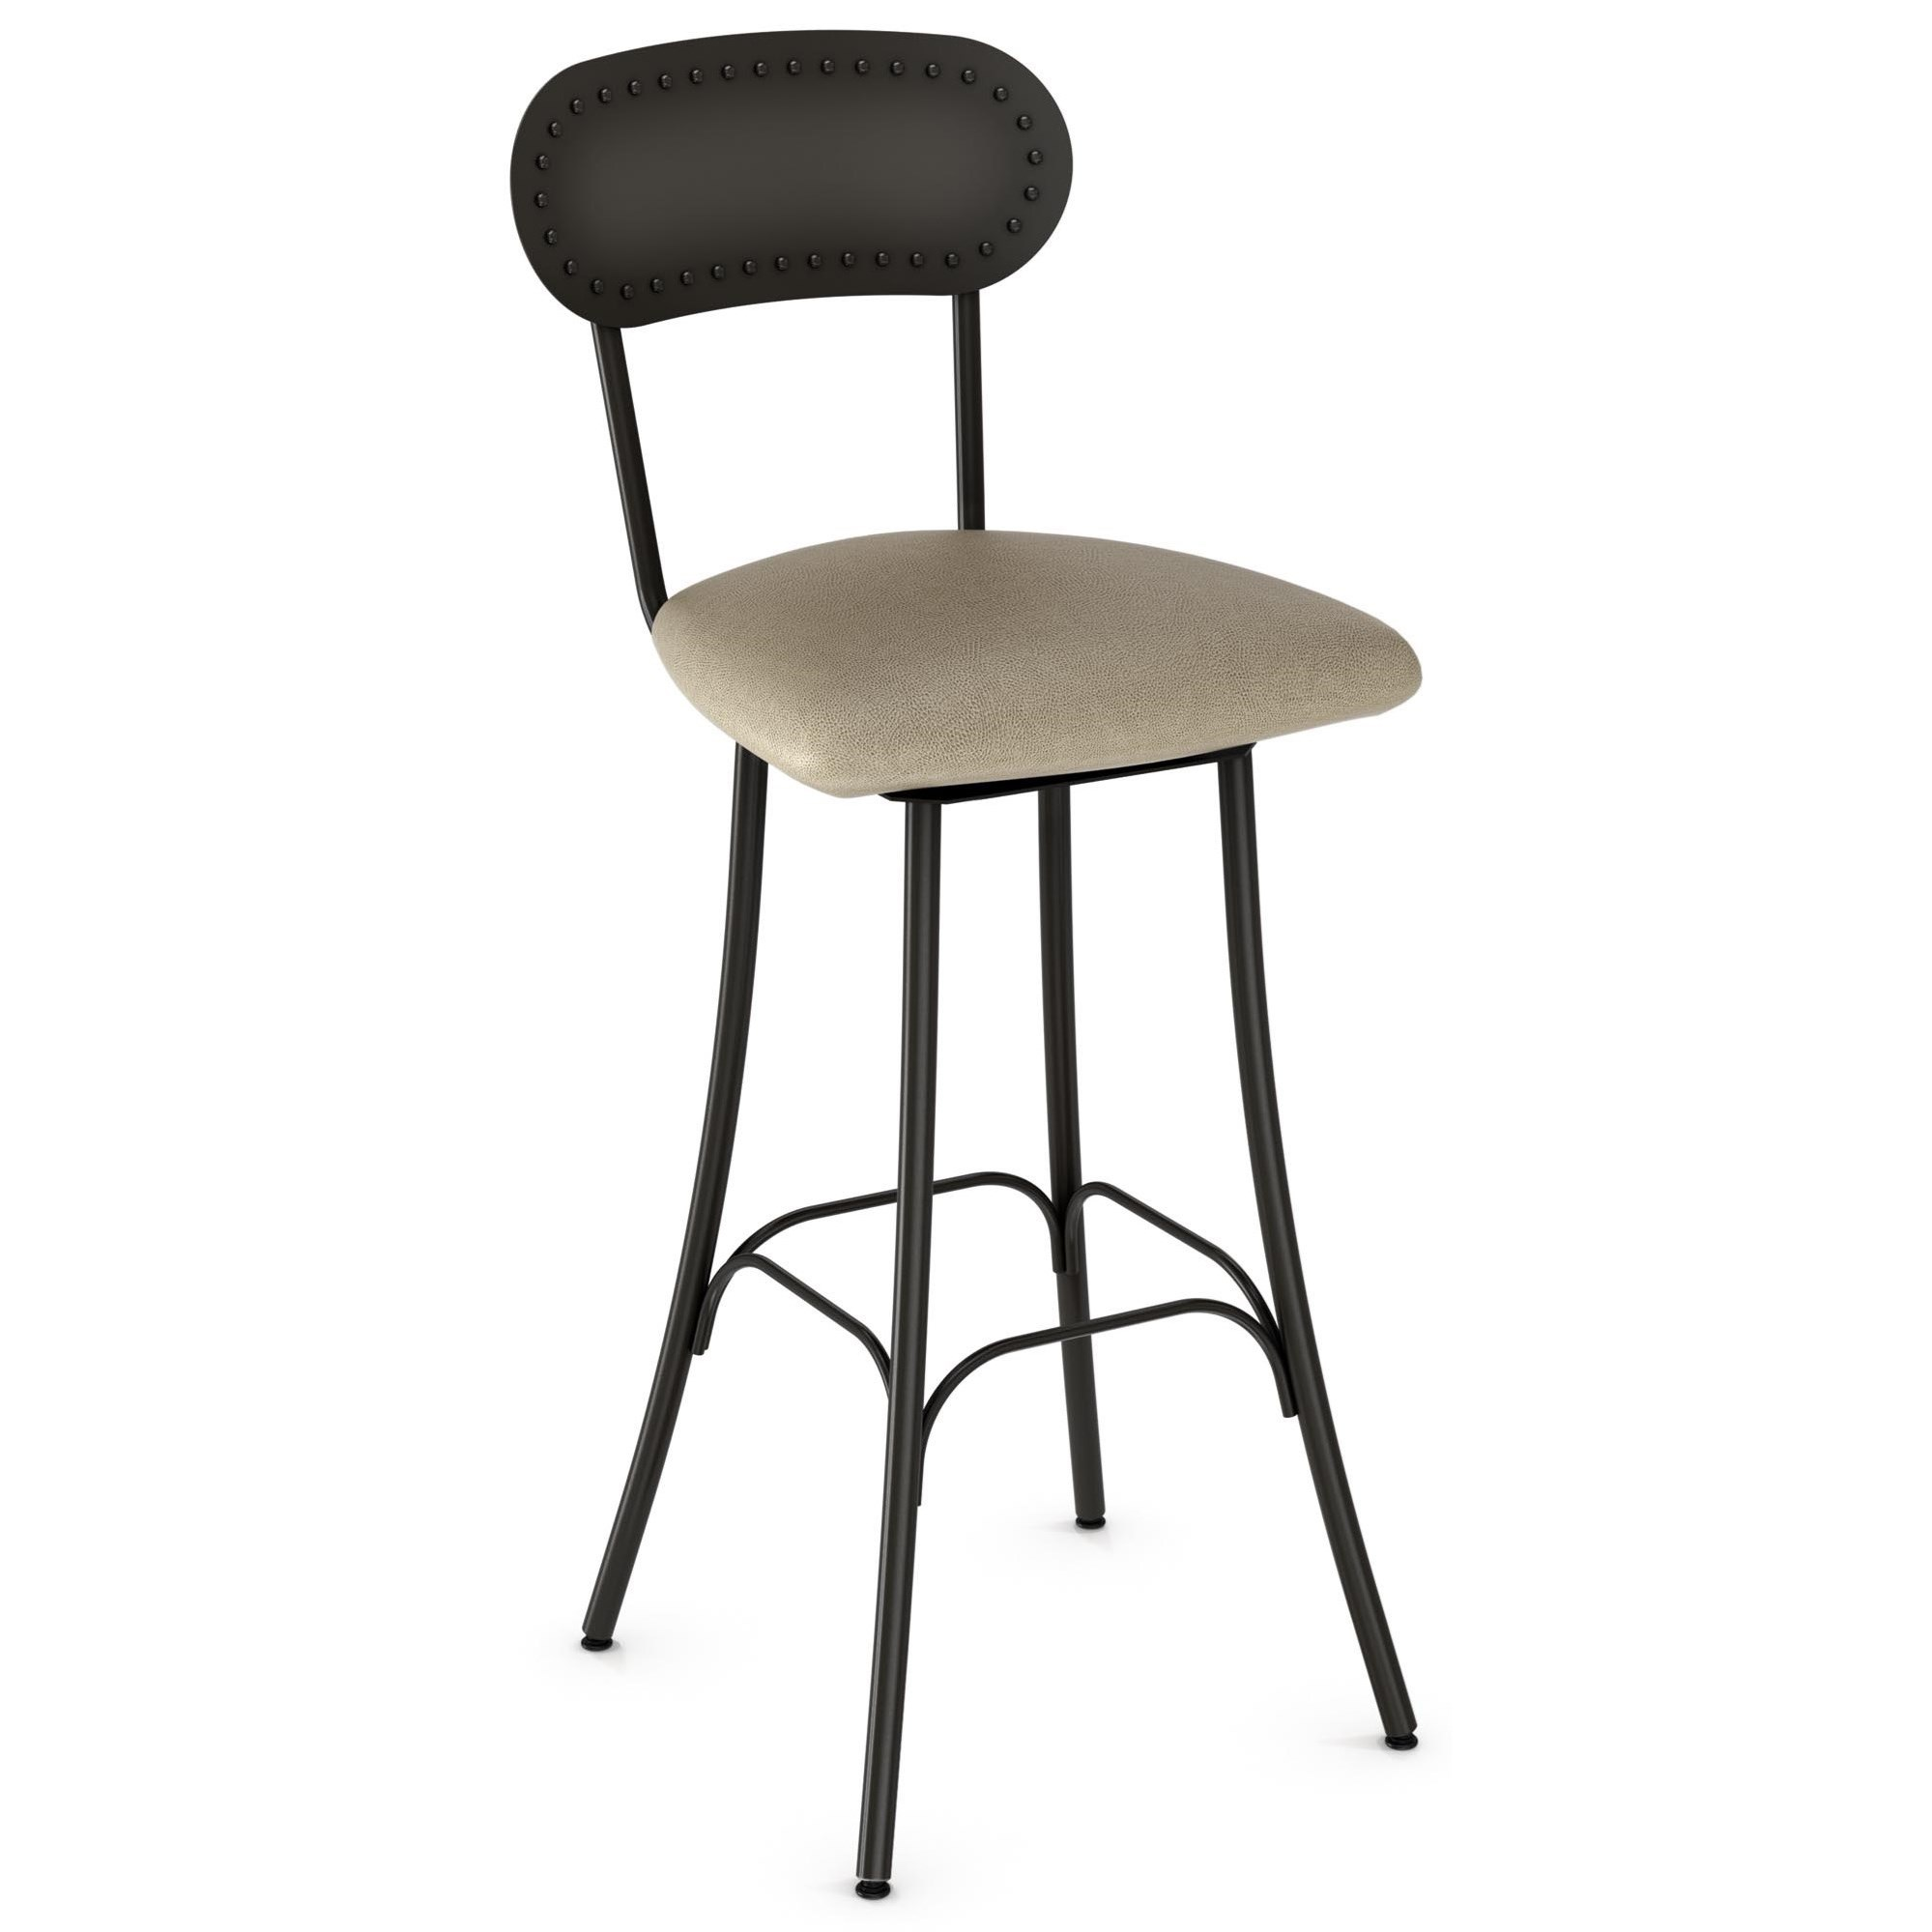 "Amisco Industrial 26"" Bean Bar Stool - Item Number: 41568-26-51-DP"